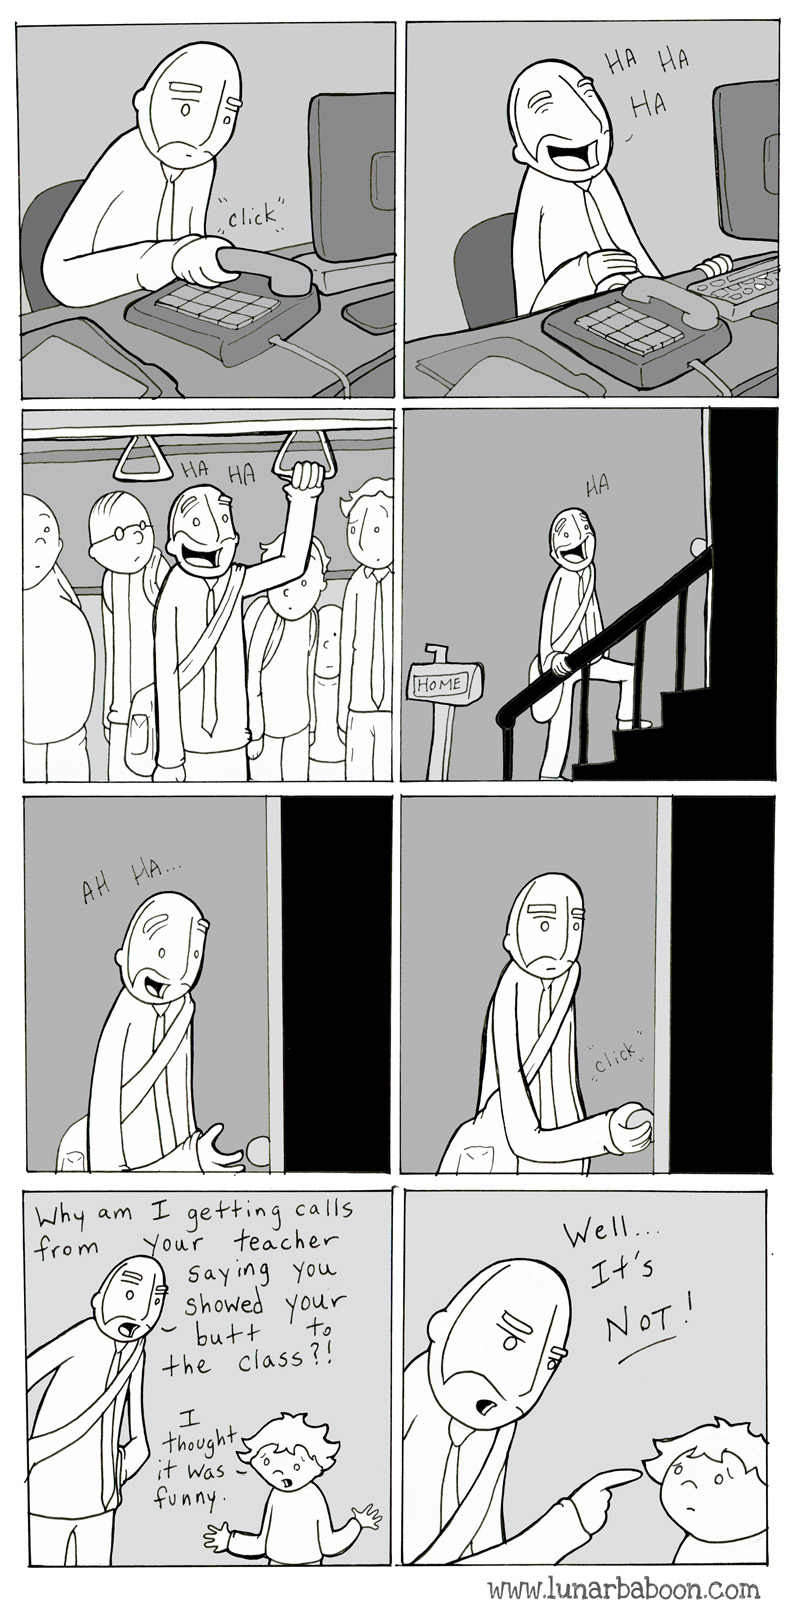 lunarbaboon-comics-call